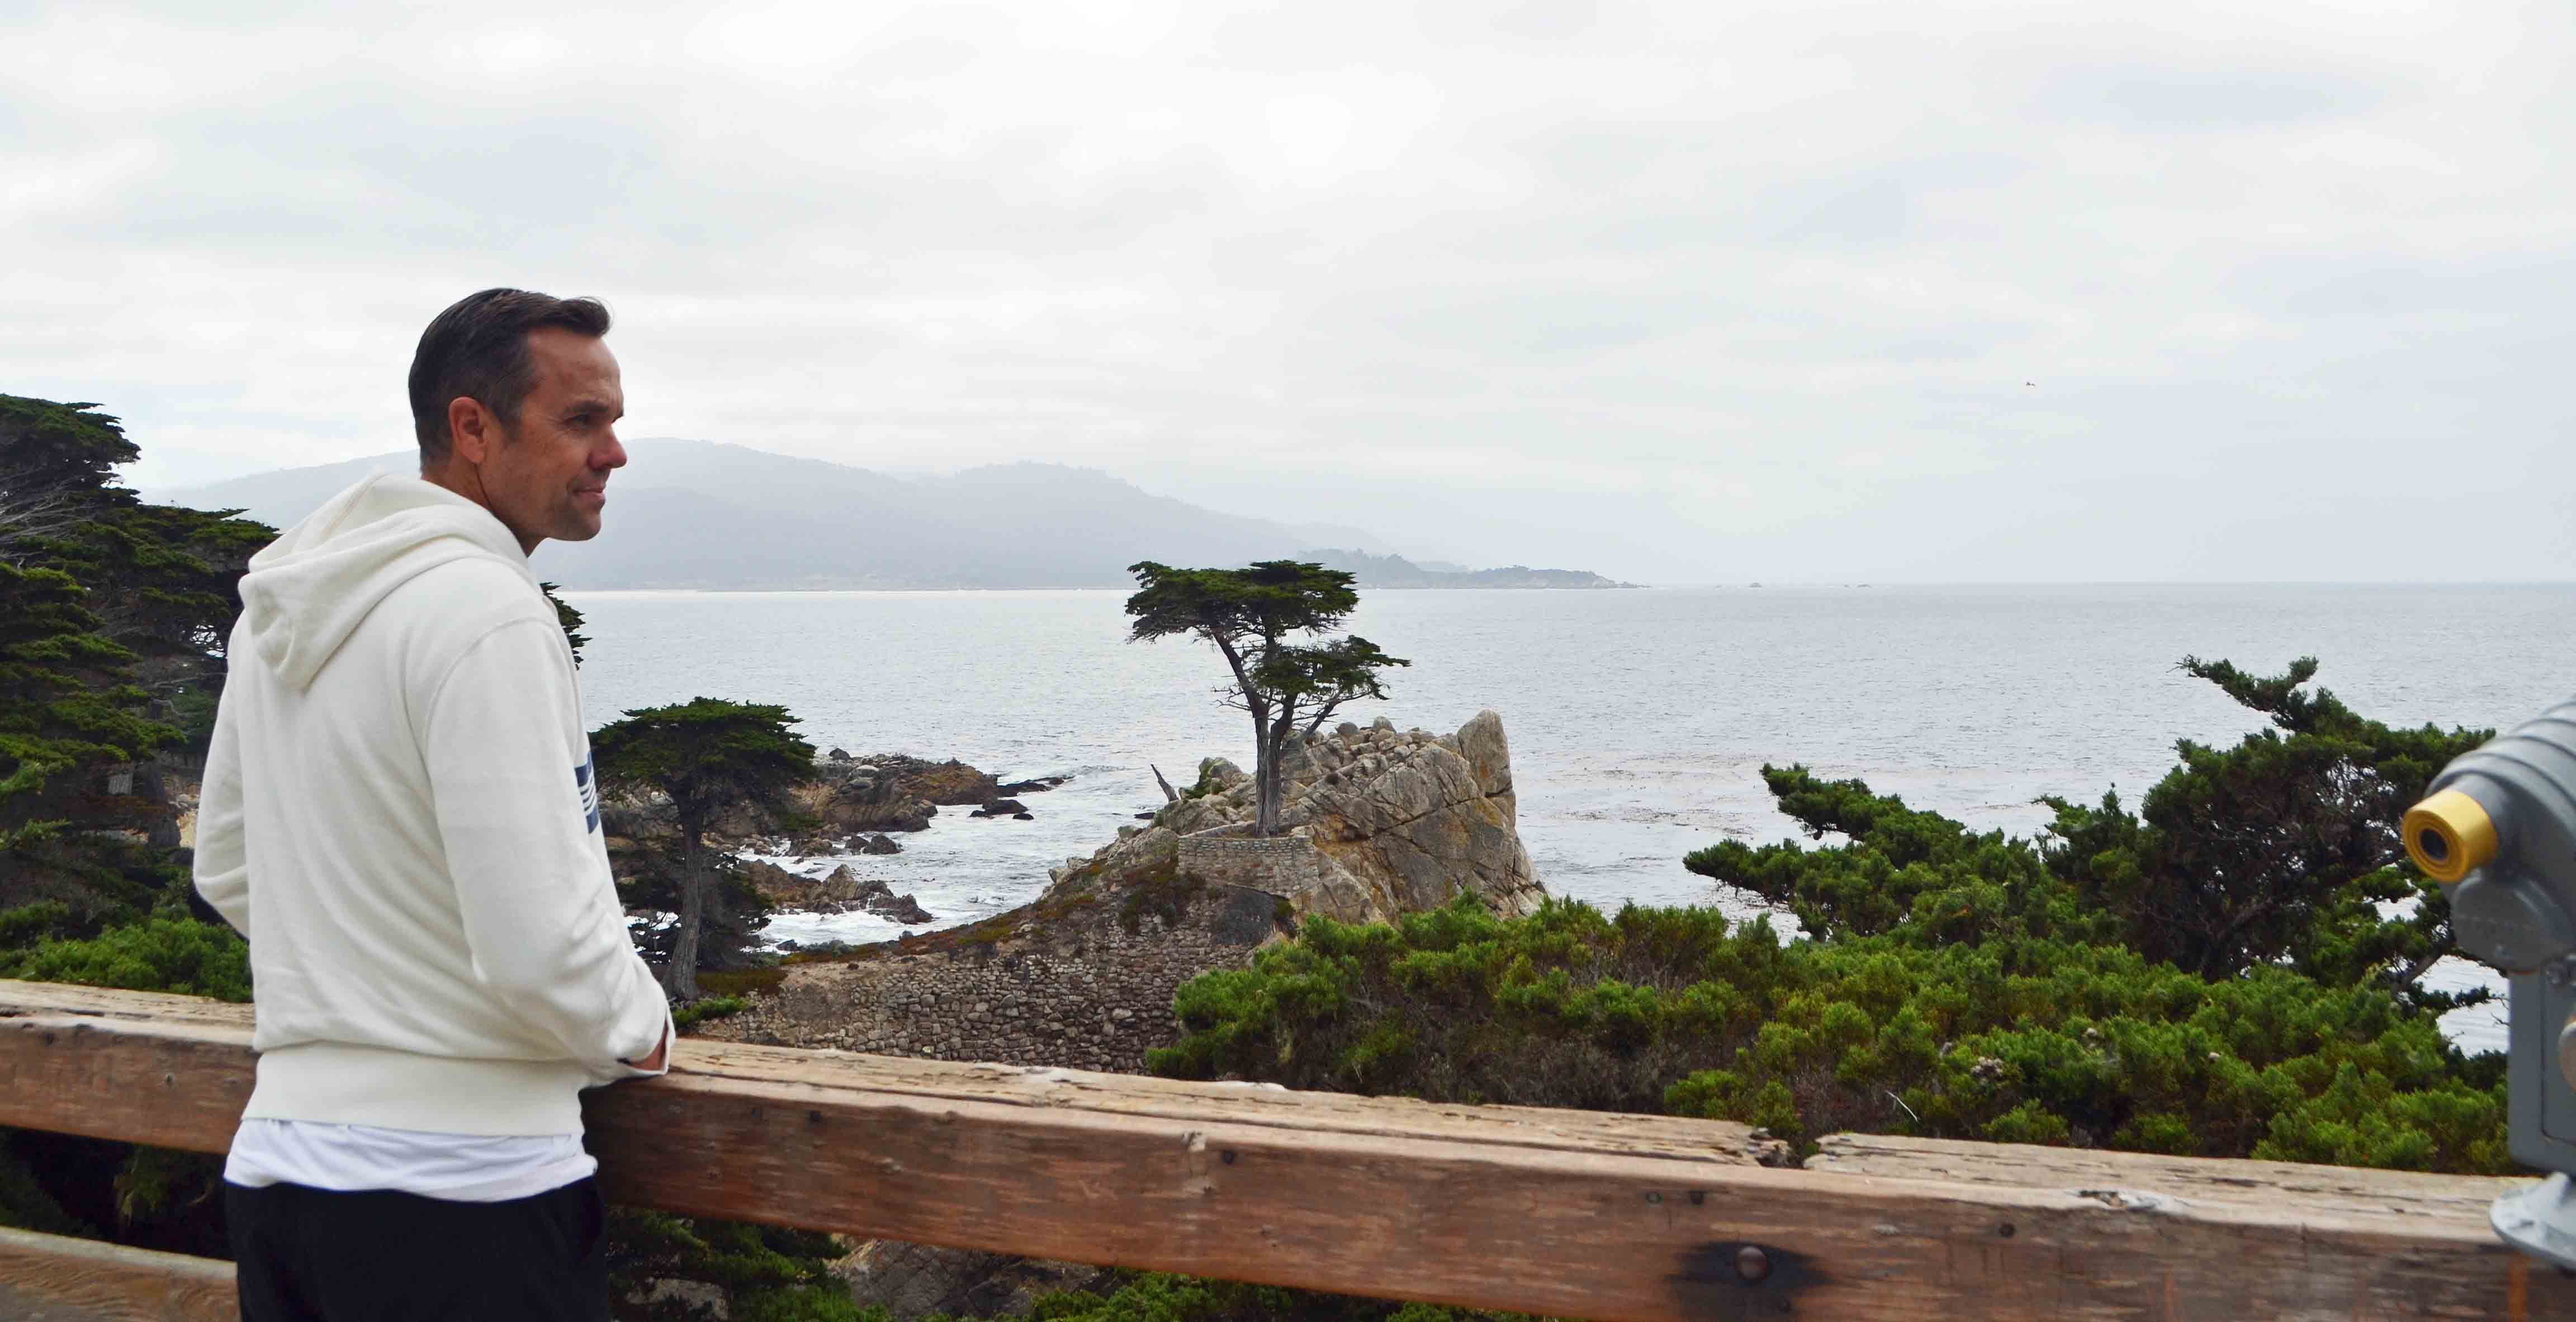 Lone Cypress Tree - 17 Mile Drive near Pebble Beach Golf Course